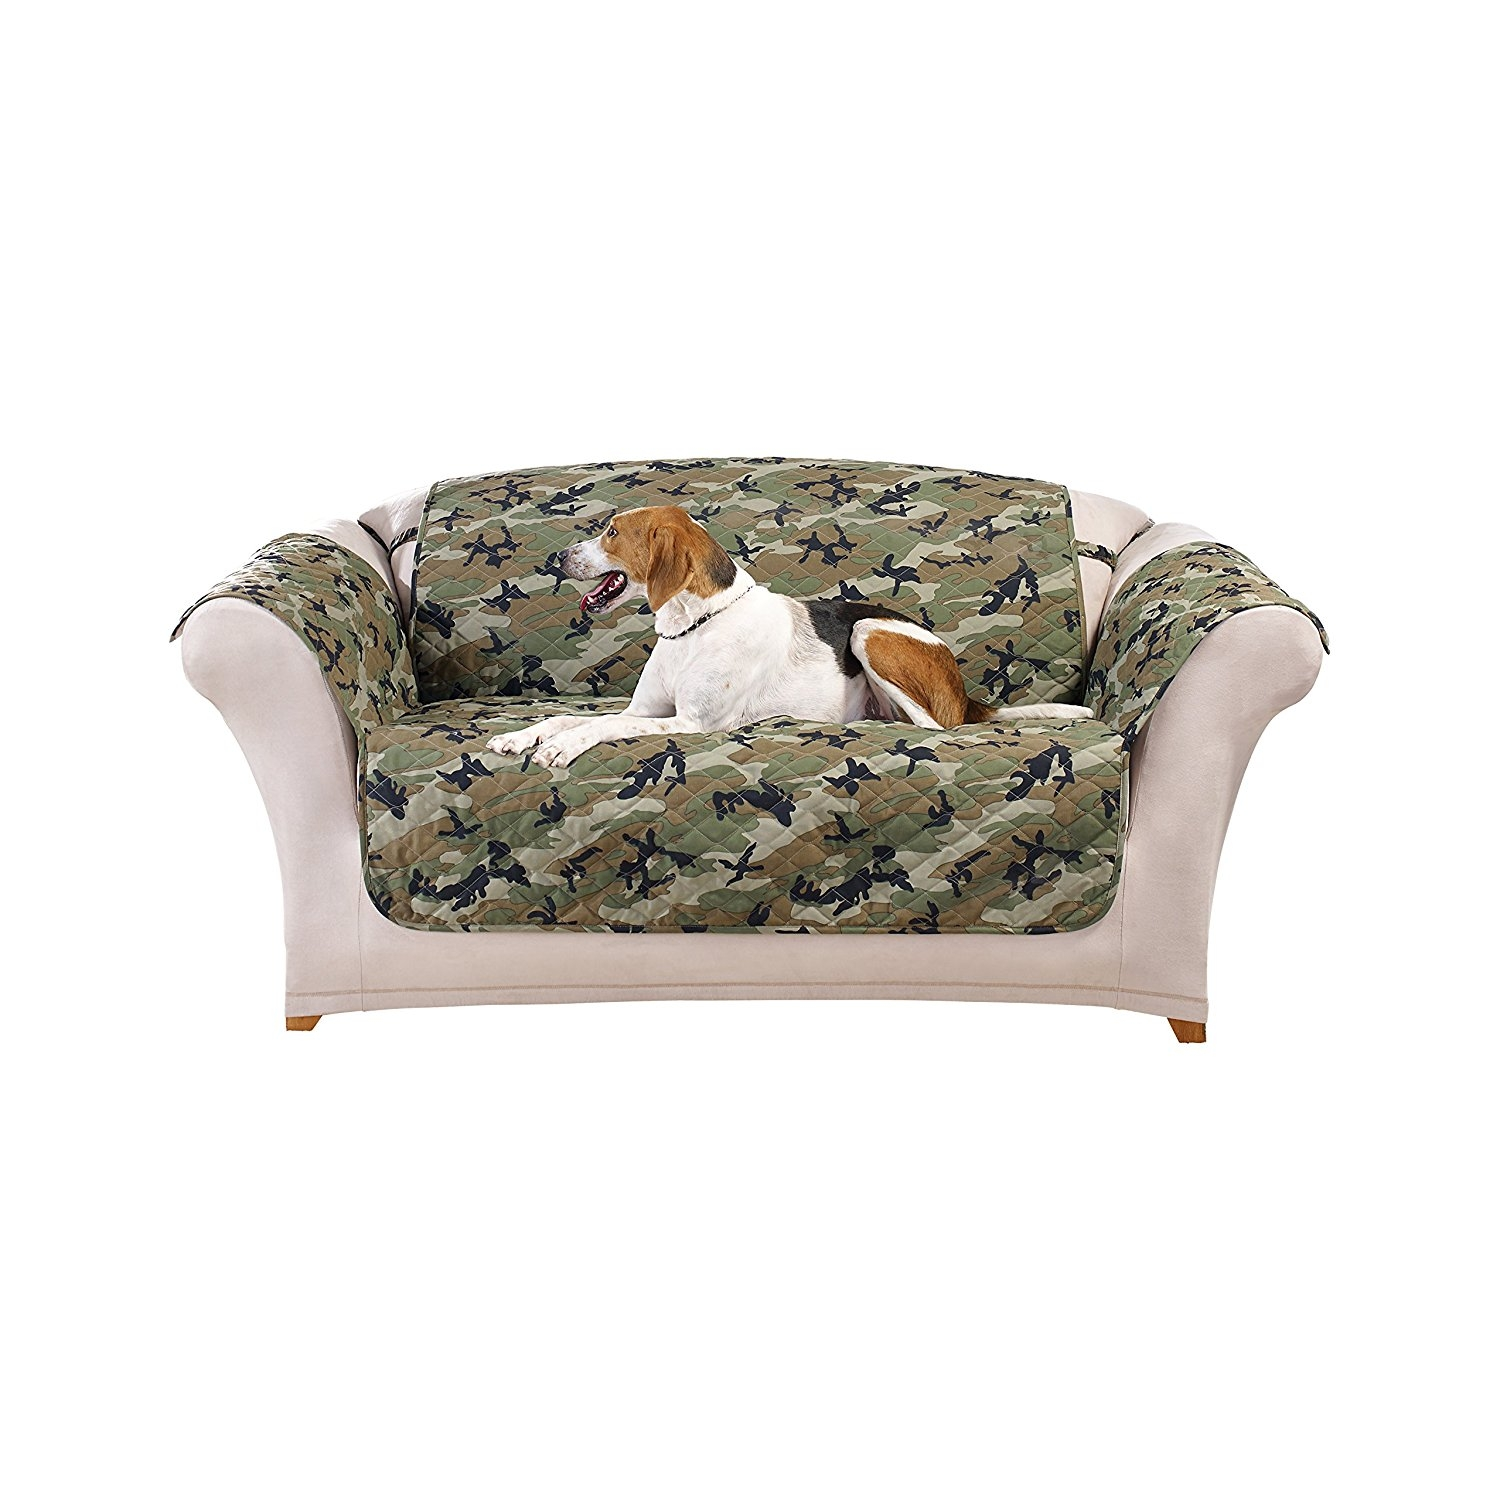 Camo Sofa Cover All Information Sofa Desain Ideas With Regard To Camo Sofa Cover (Image 1 of 15)